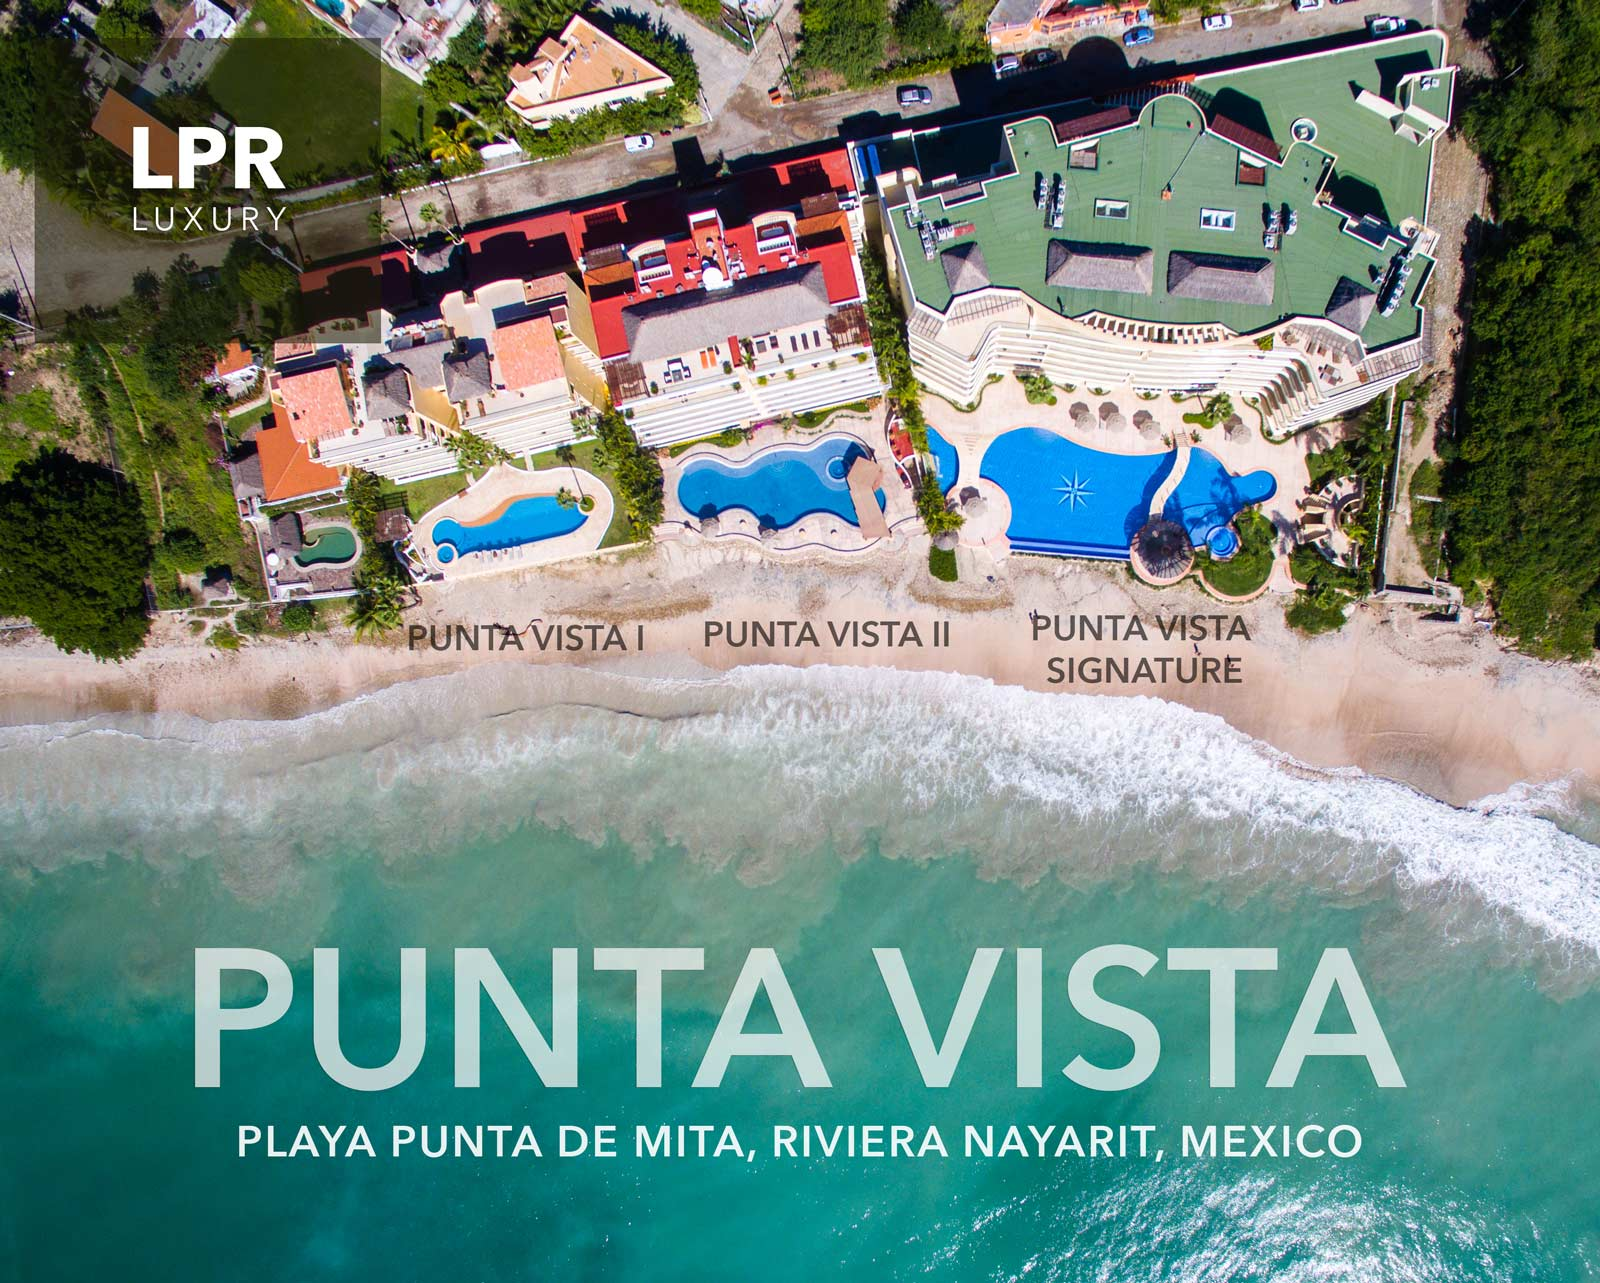 Punta Vista condos on Punta de Mita beach next to the Punta Mita Resort, Riviera Nayarit, Mexico